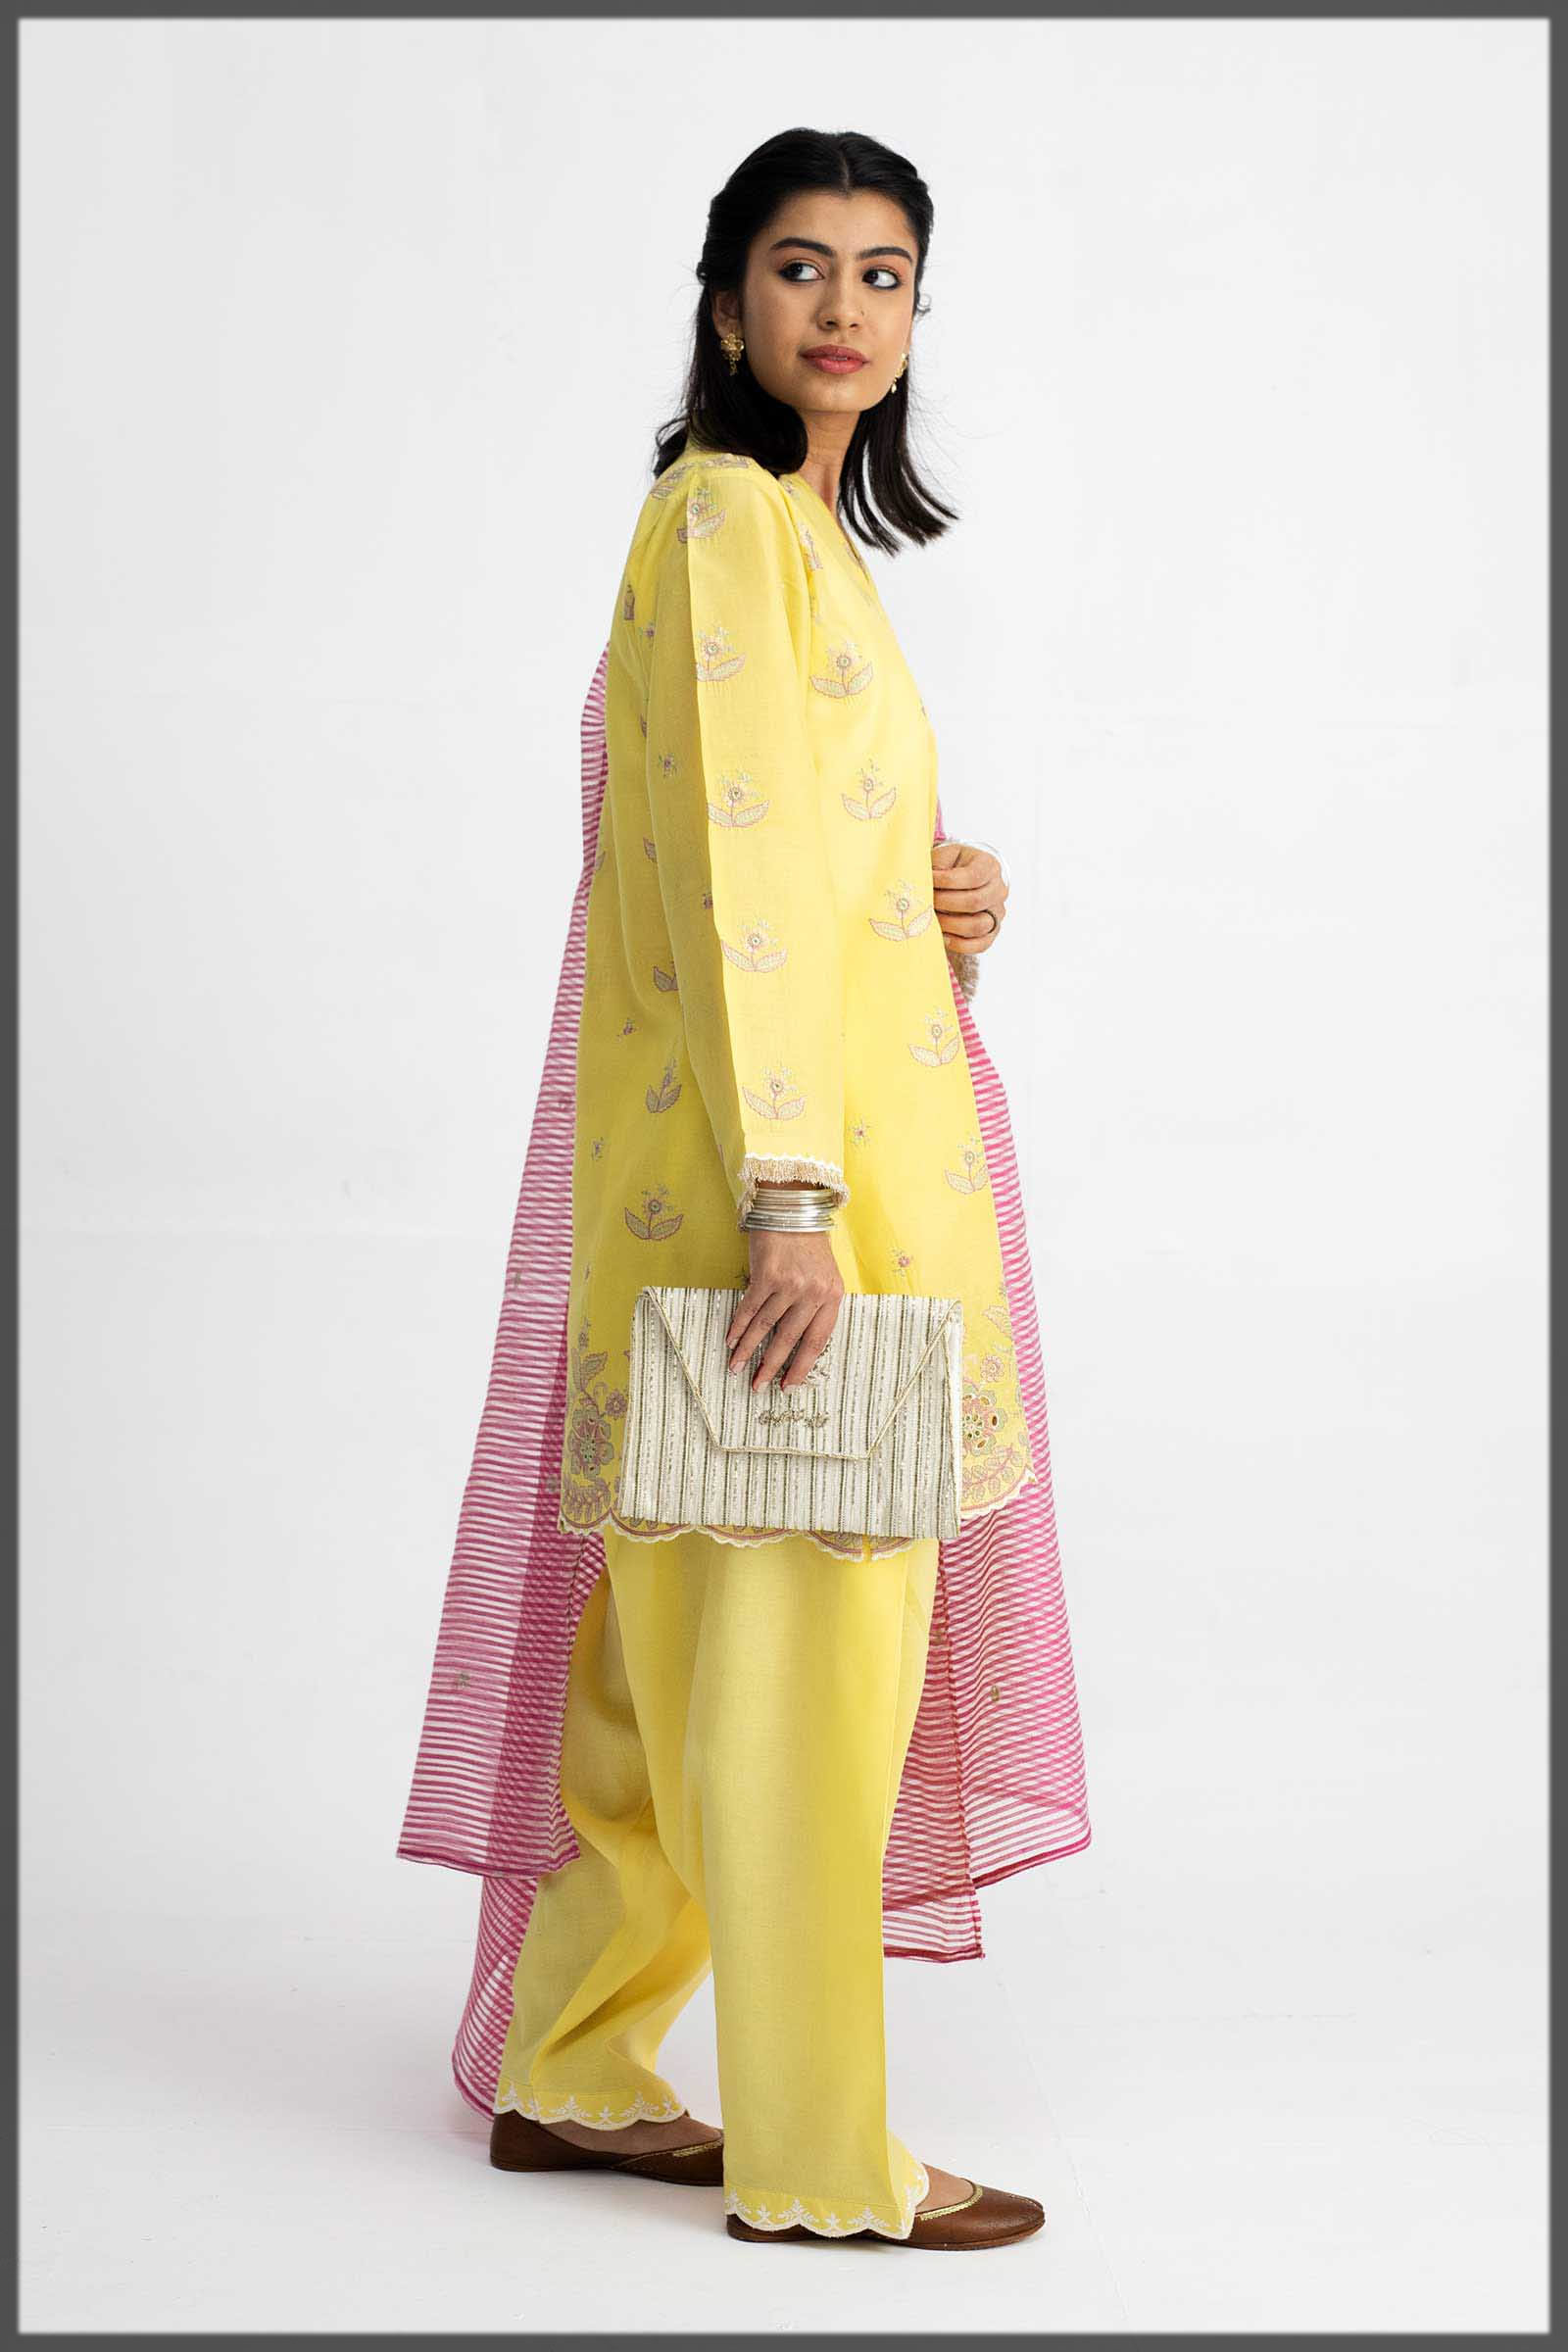 Beautiful Custard Yellow Outfit for Eid